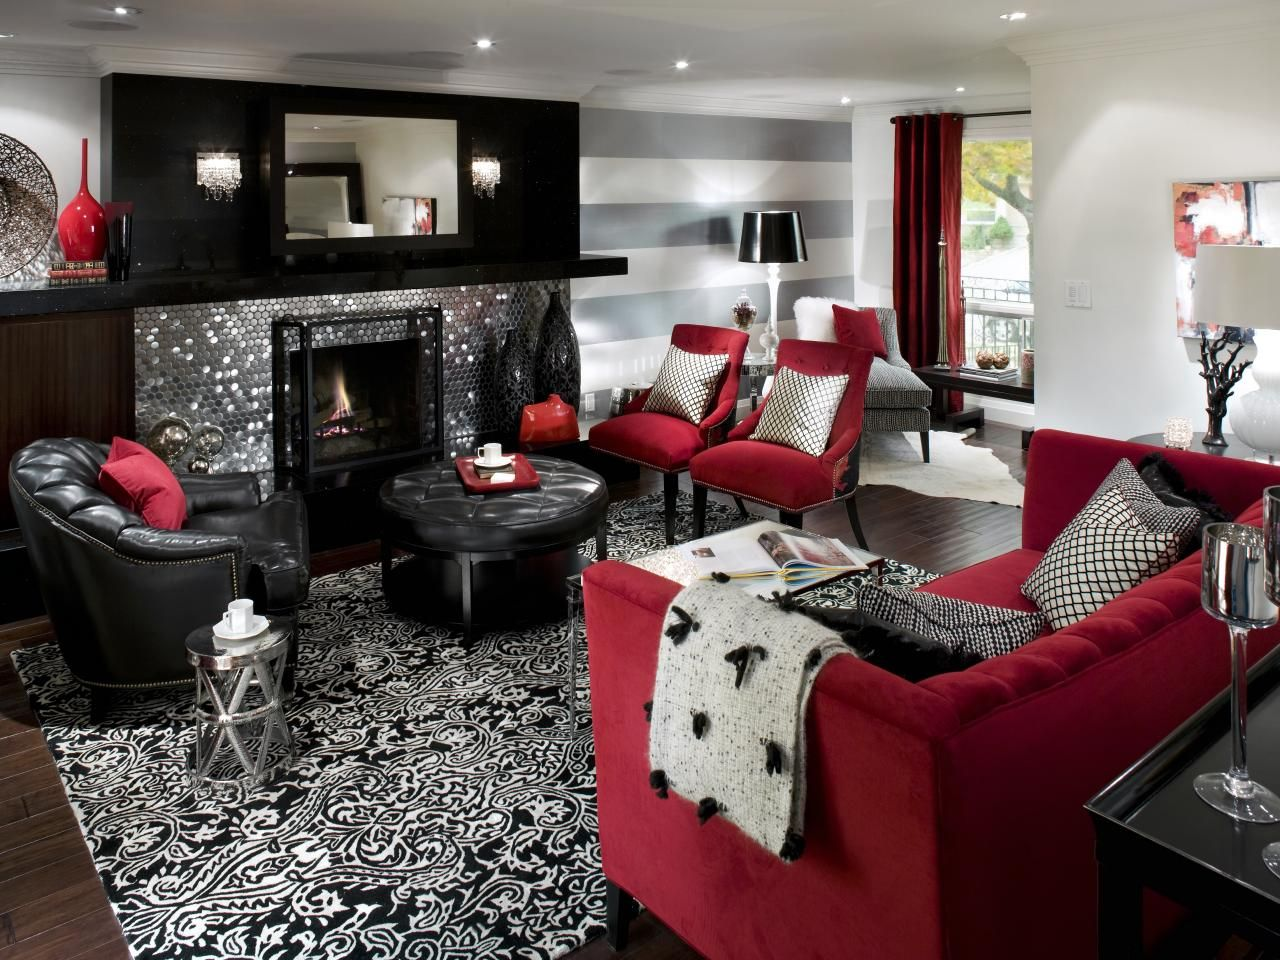 9 Fireplace Design Ideas From Candice Olson. White Living RoomsLiving Room  IdeasRed ...